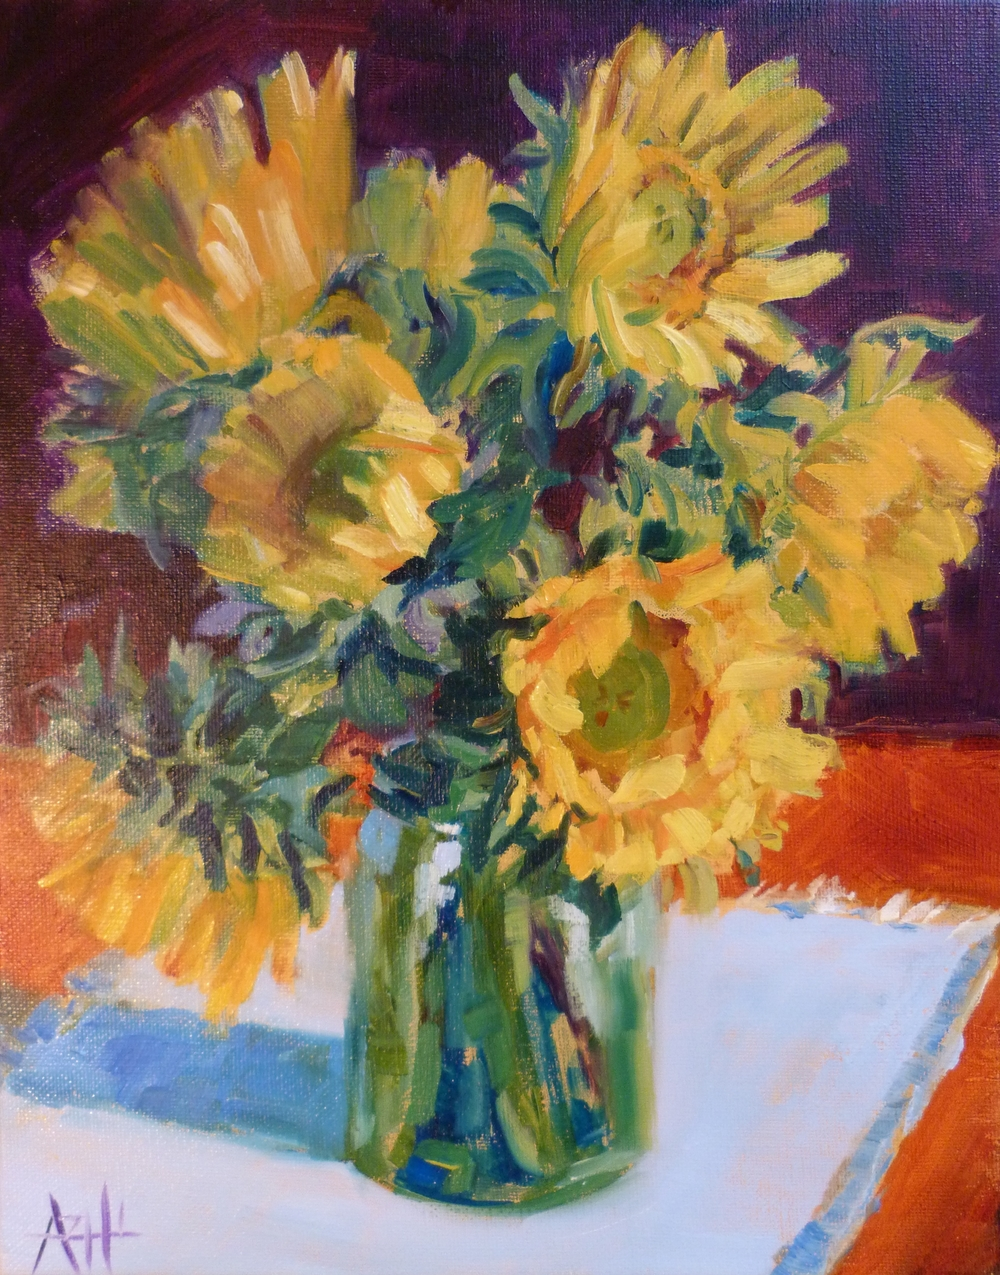 "SOLD, Sunflowers in a Jar, Copyright 2014 Hirschten, Oil on Canvas, 11"" x 14"""